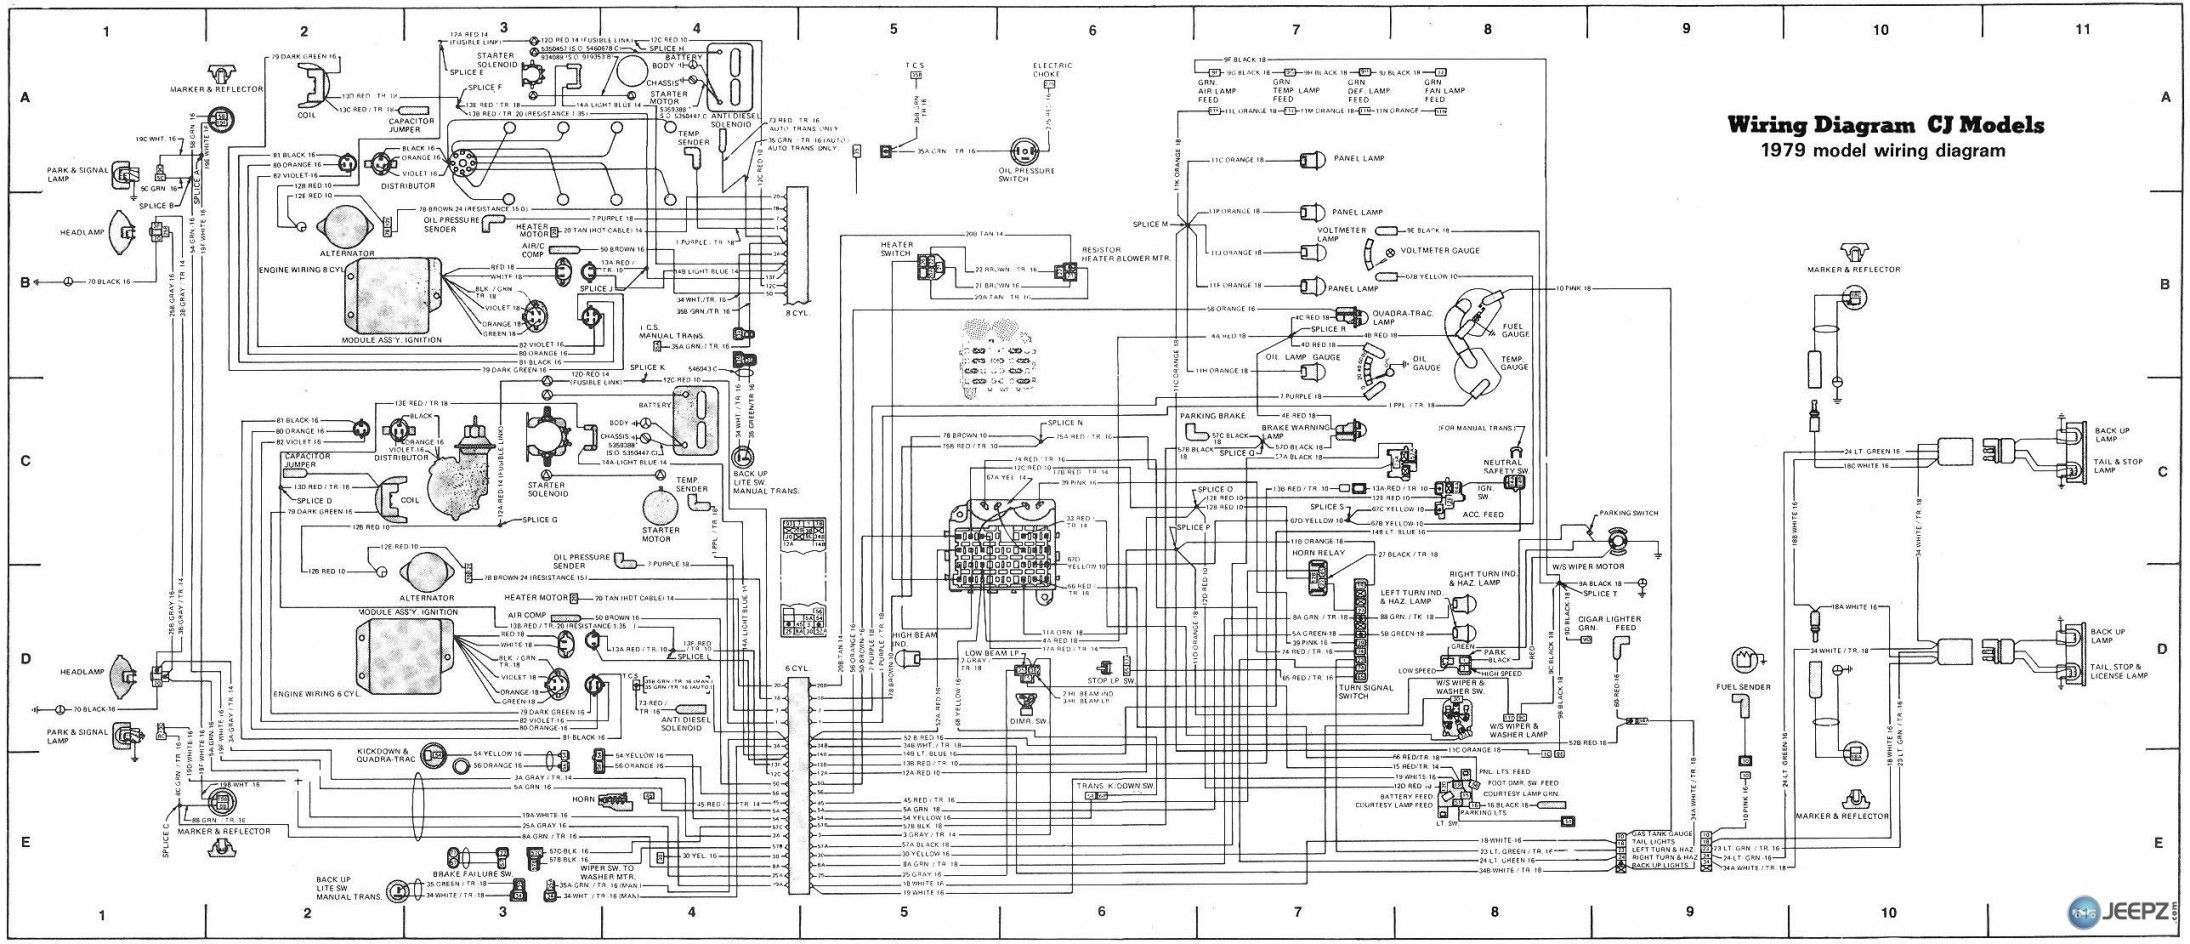 Camaro Fuse Box 79 Diagram Wiring Library 1975 Cj5 Schematic Rh Theodocle Fion Com 1979 Z28